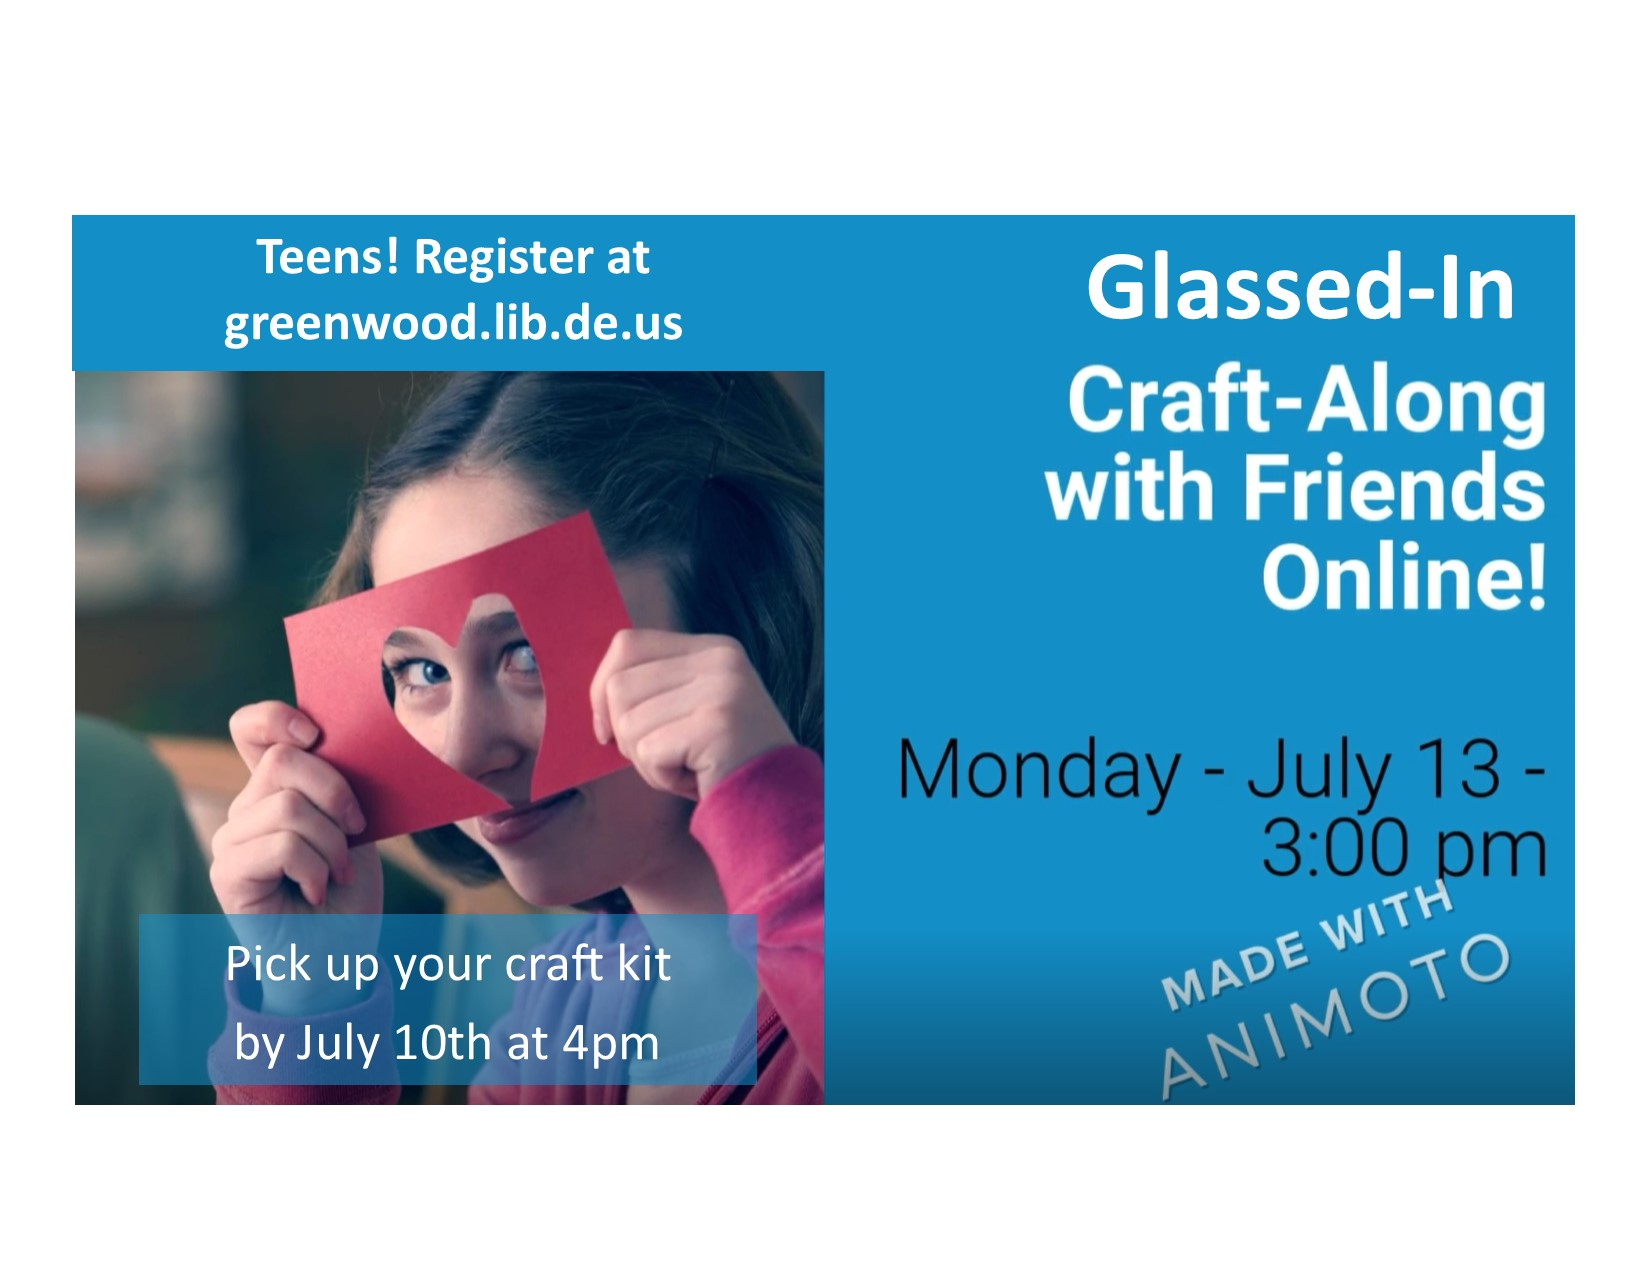 Greenwood Library Hosts Glassed-In Craft Along